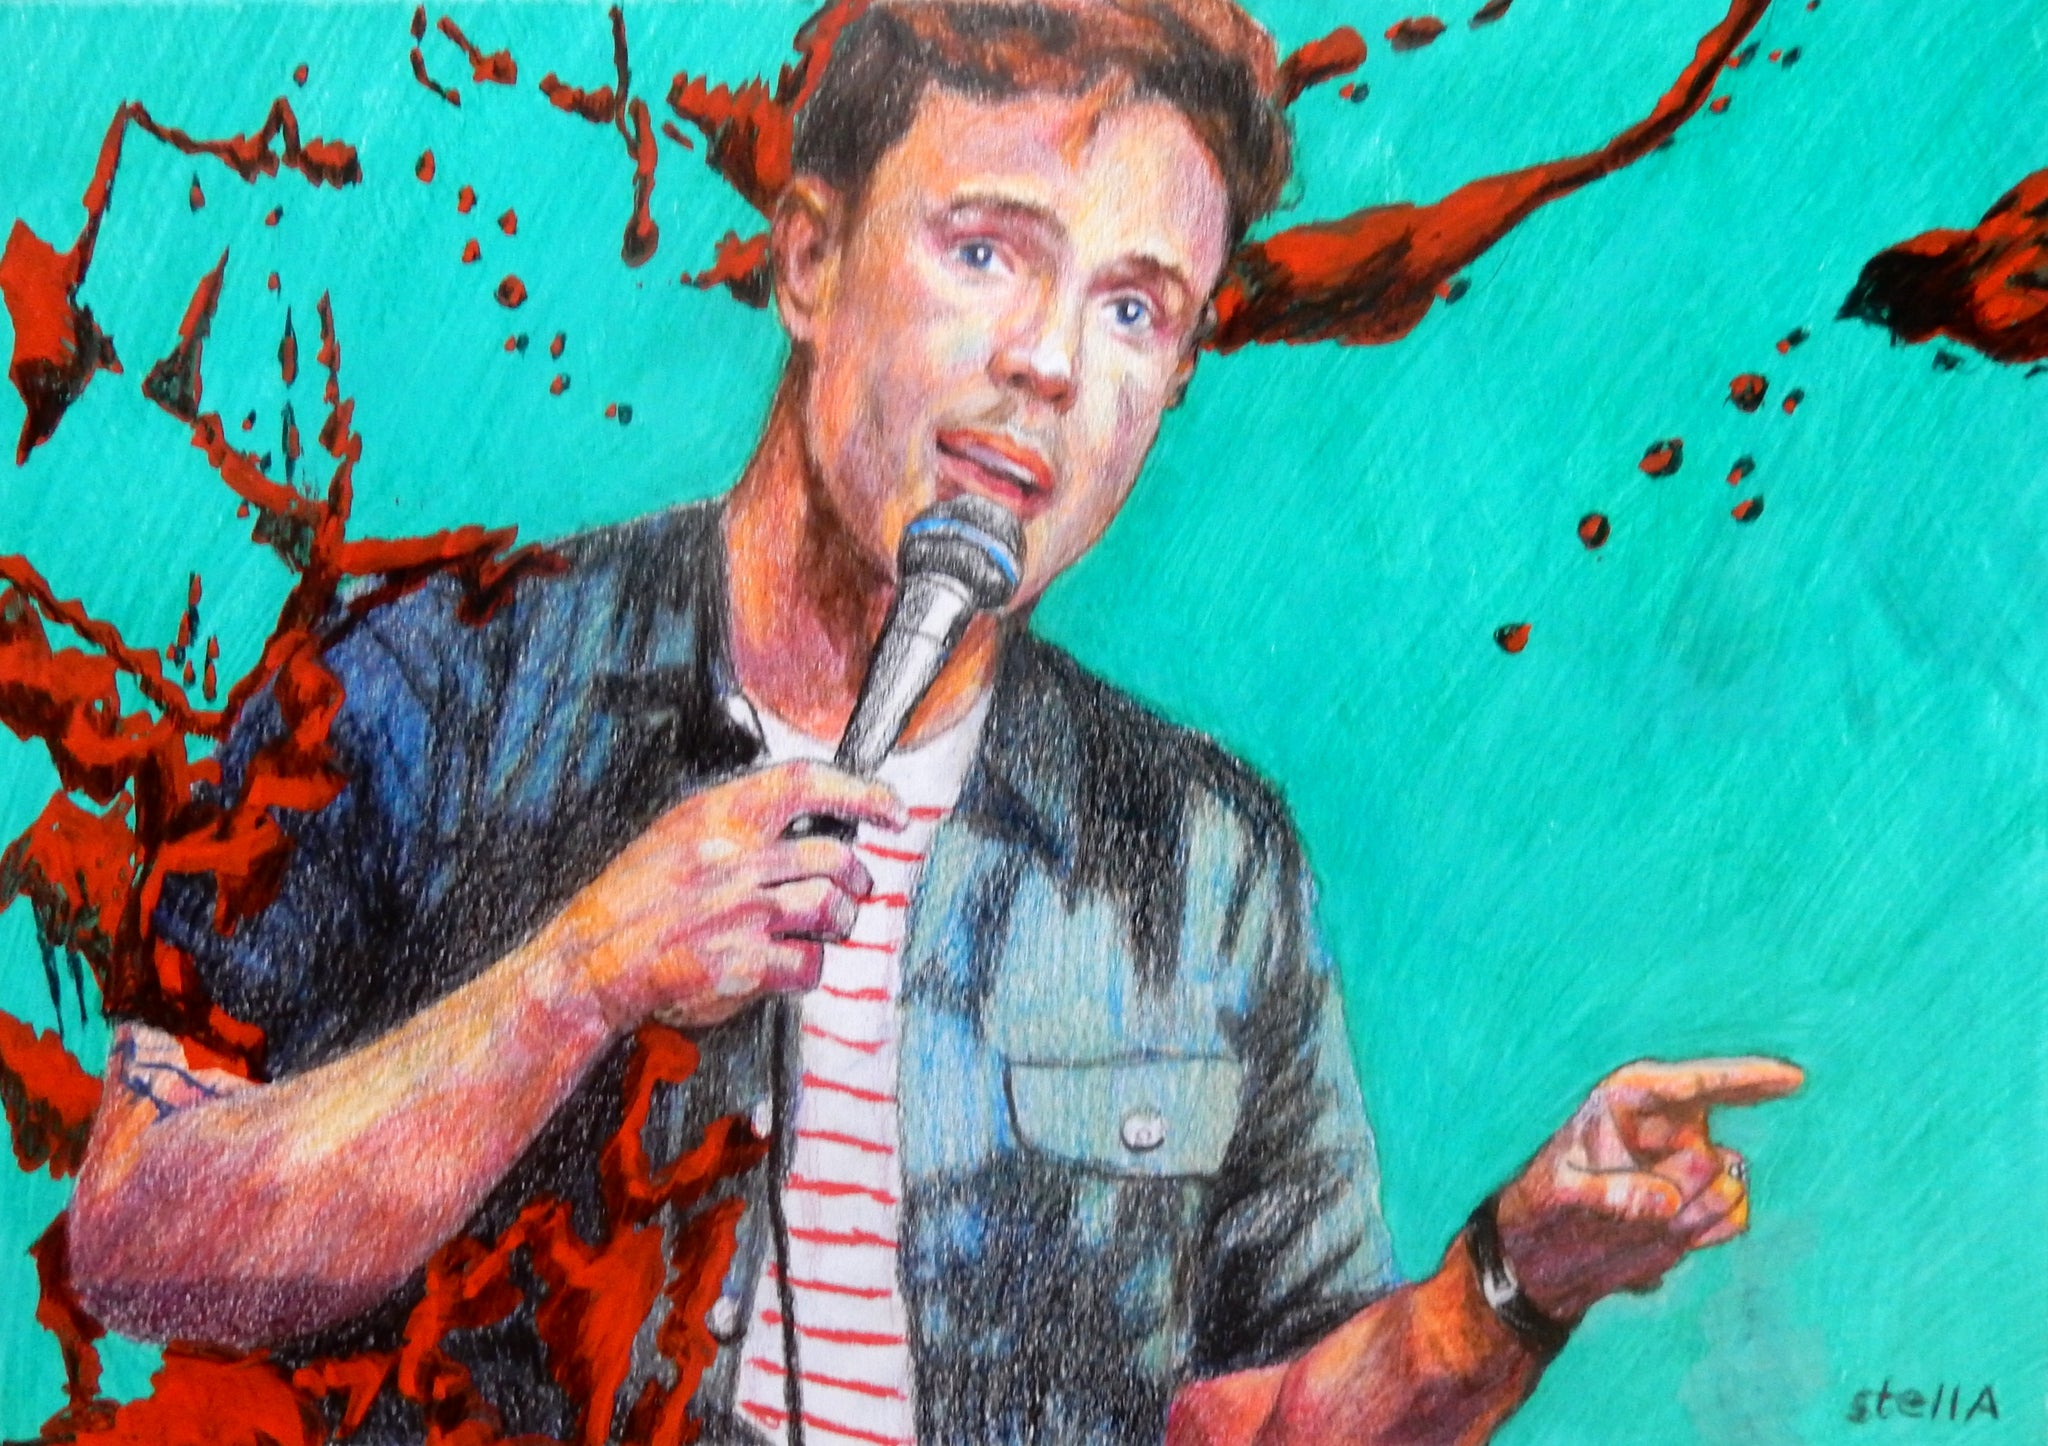 Ed Gamble comedian mixed media on paper by Stella Tooth artist